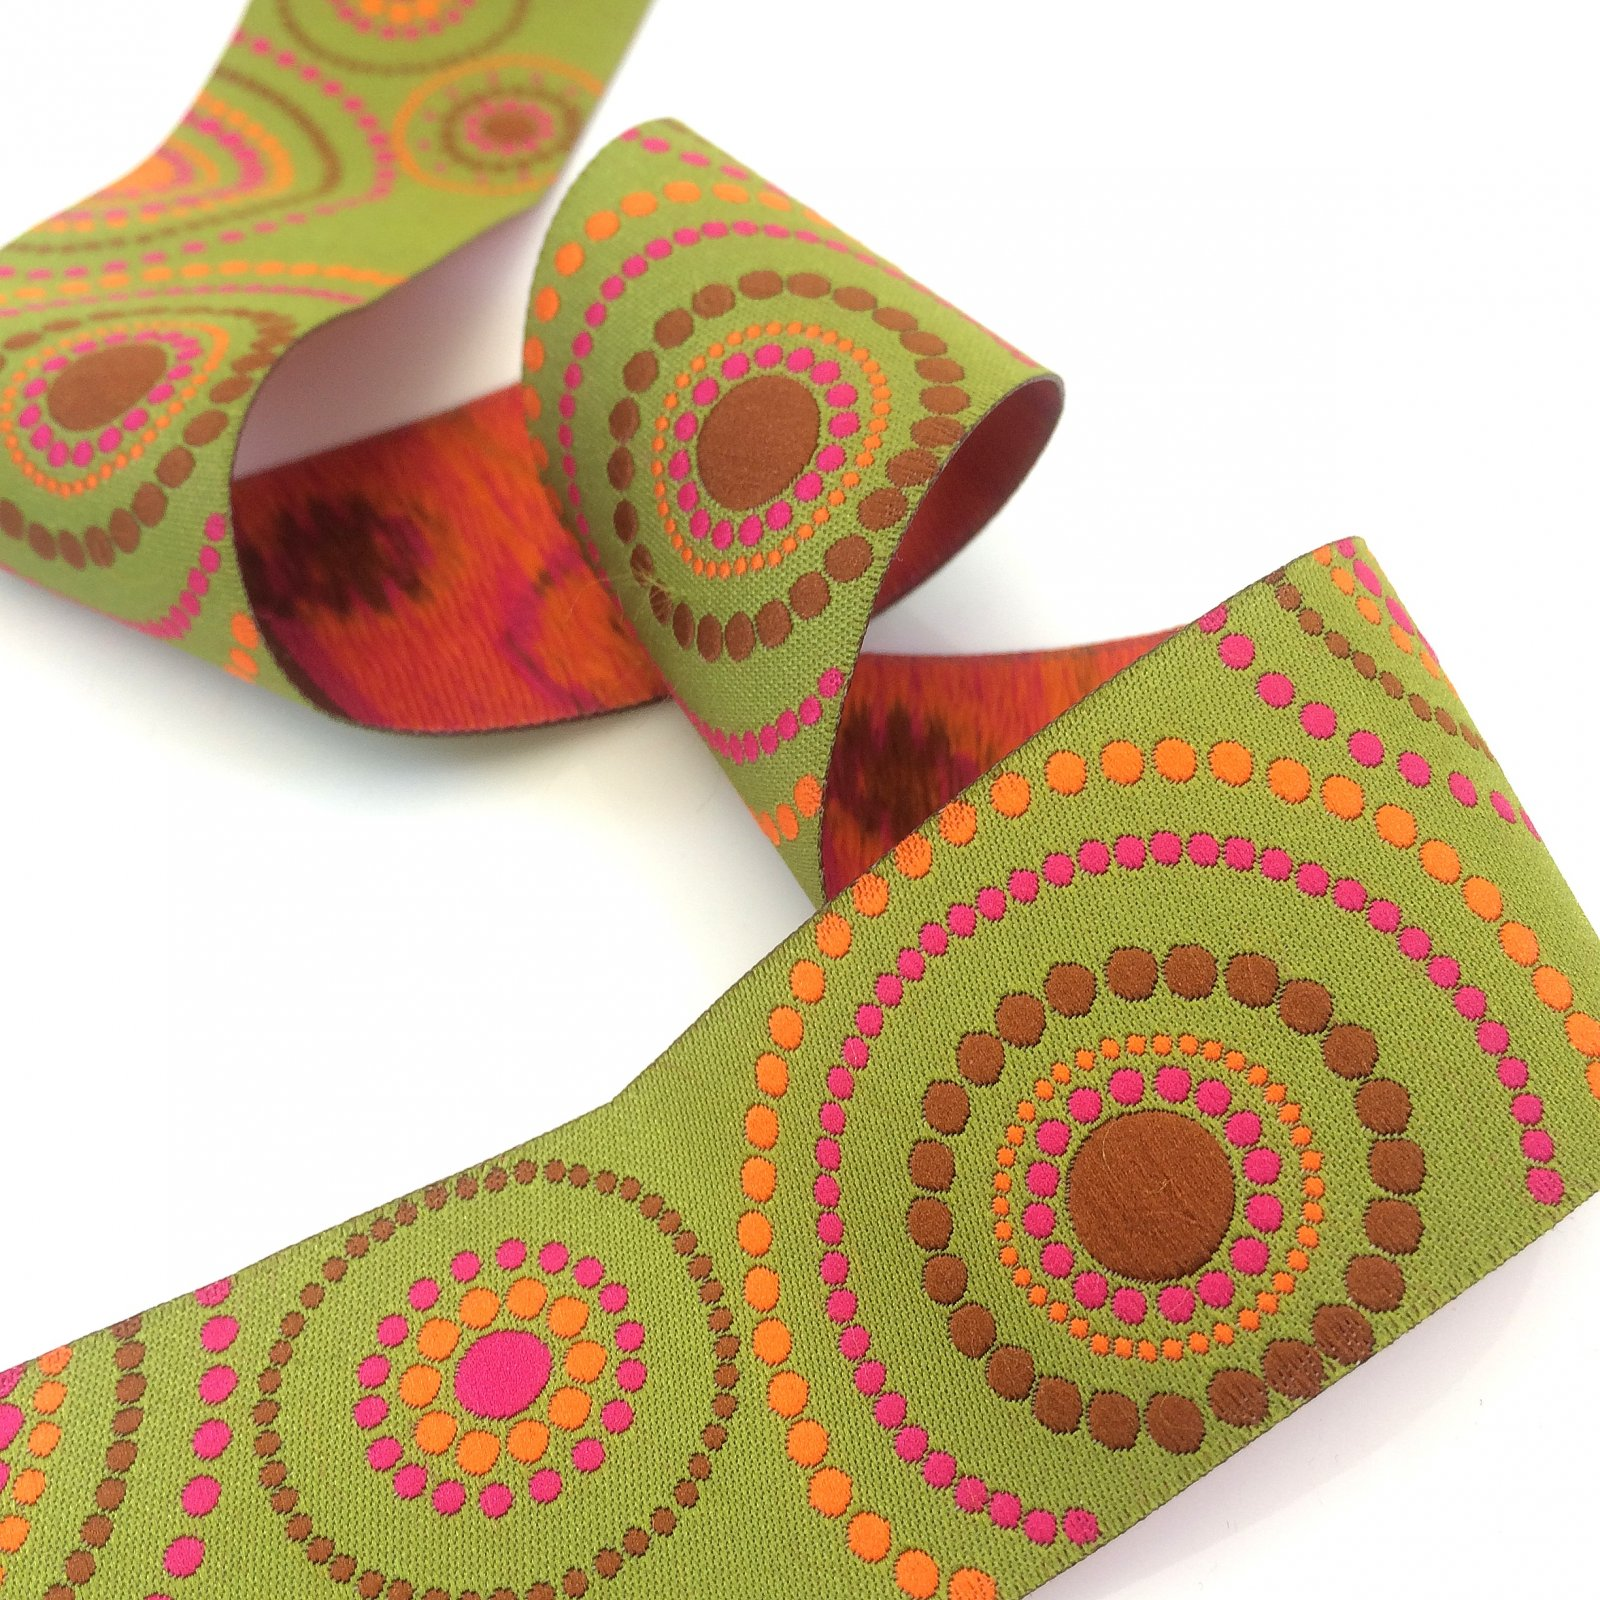 RENAISSANCE RIBBONS - GREEN/ORANGE CONCENTRIC CIRCLES 1.5 IN